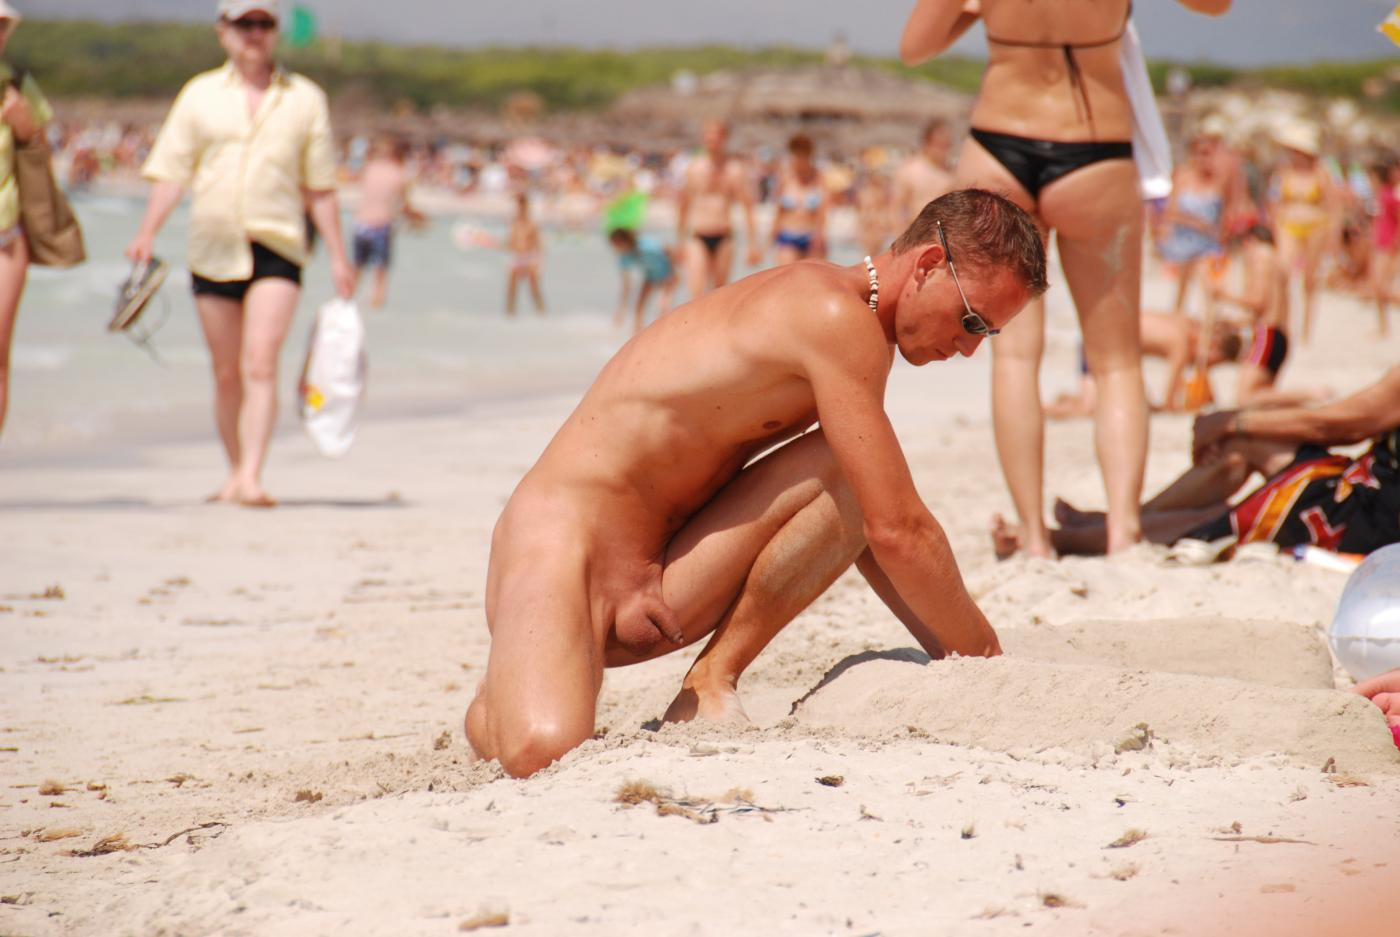 Hot Guys On Nude Beach